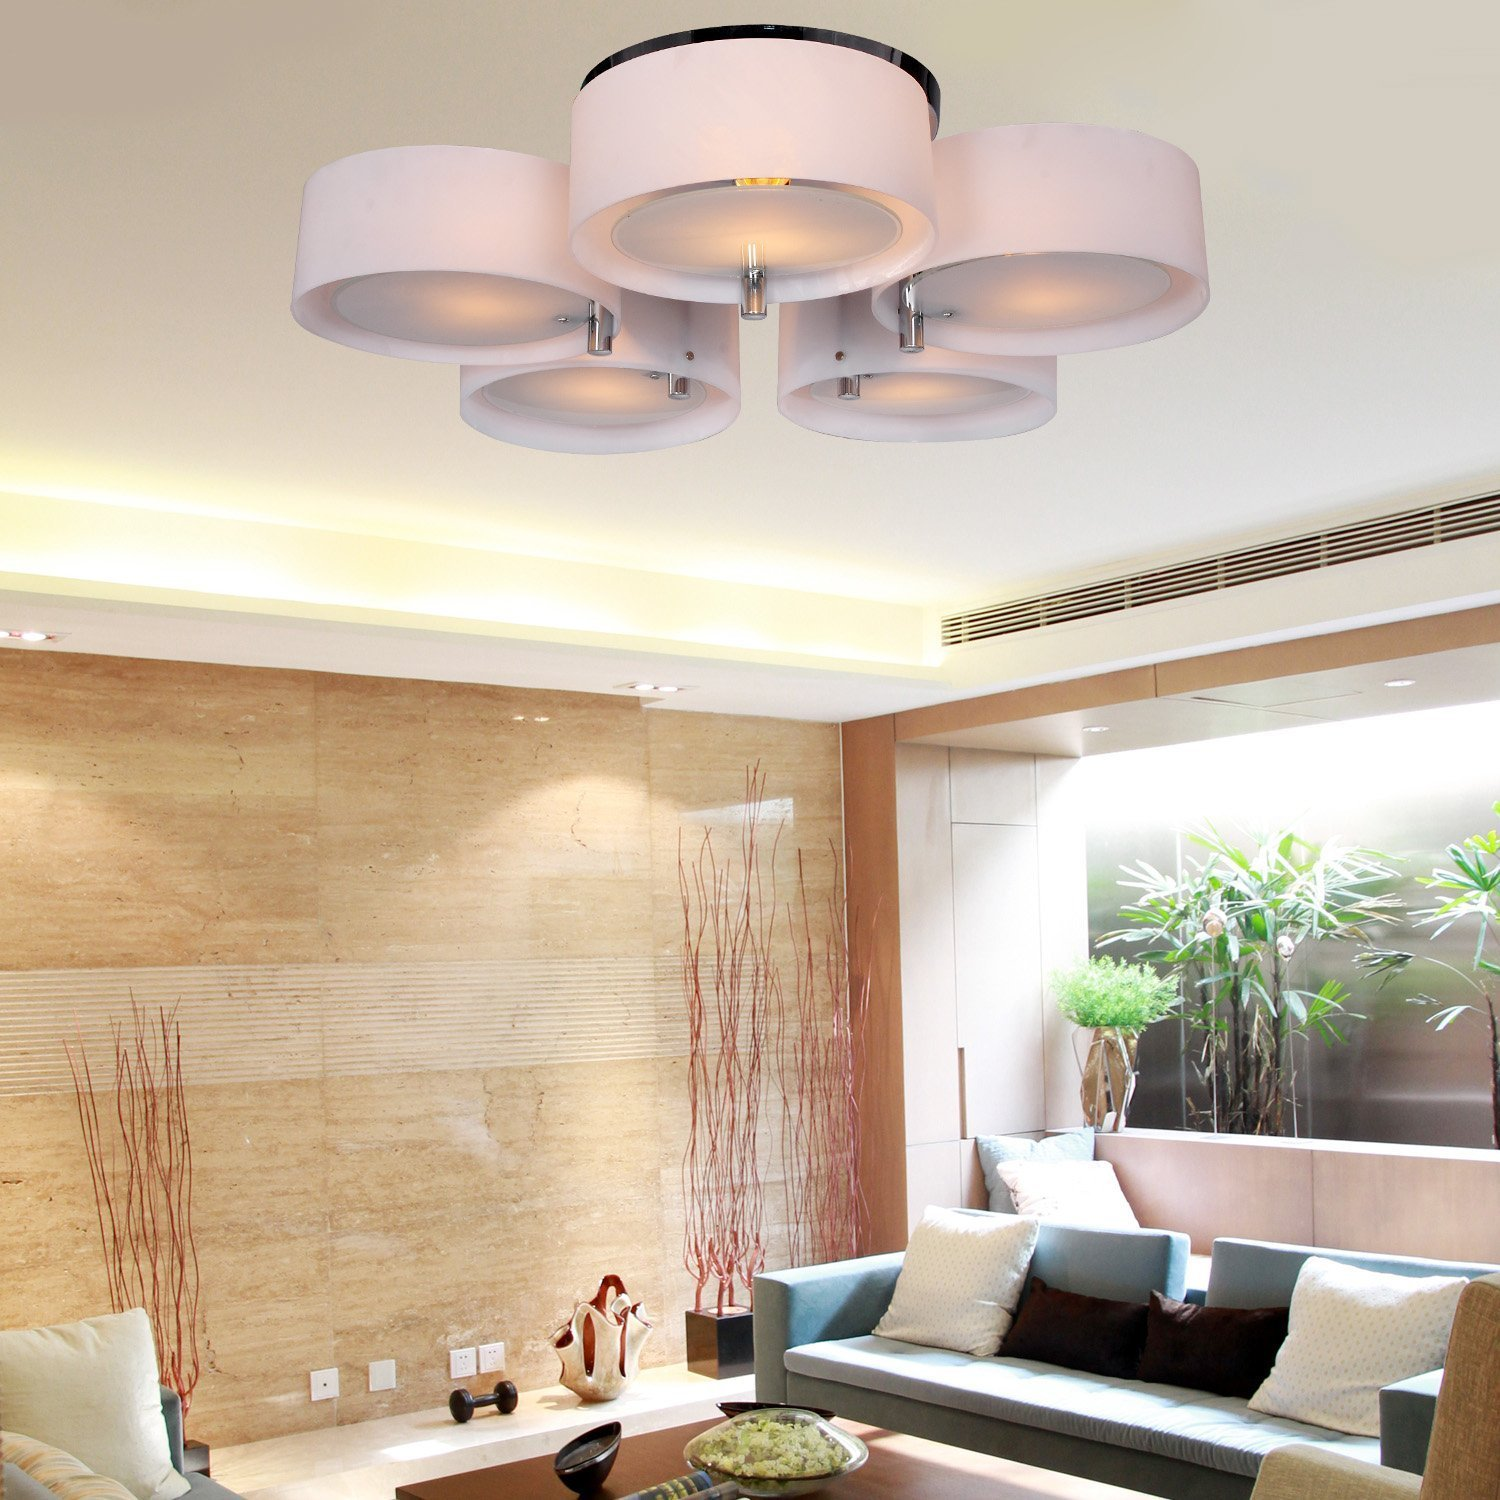 ceiling pictures lovely best lighting ideas of new interior modern living home for room lights bedroom bedrooms